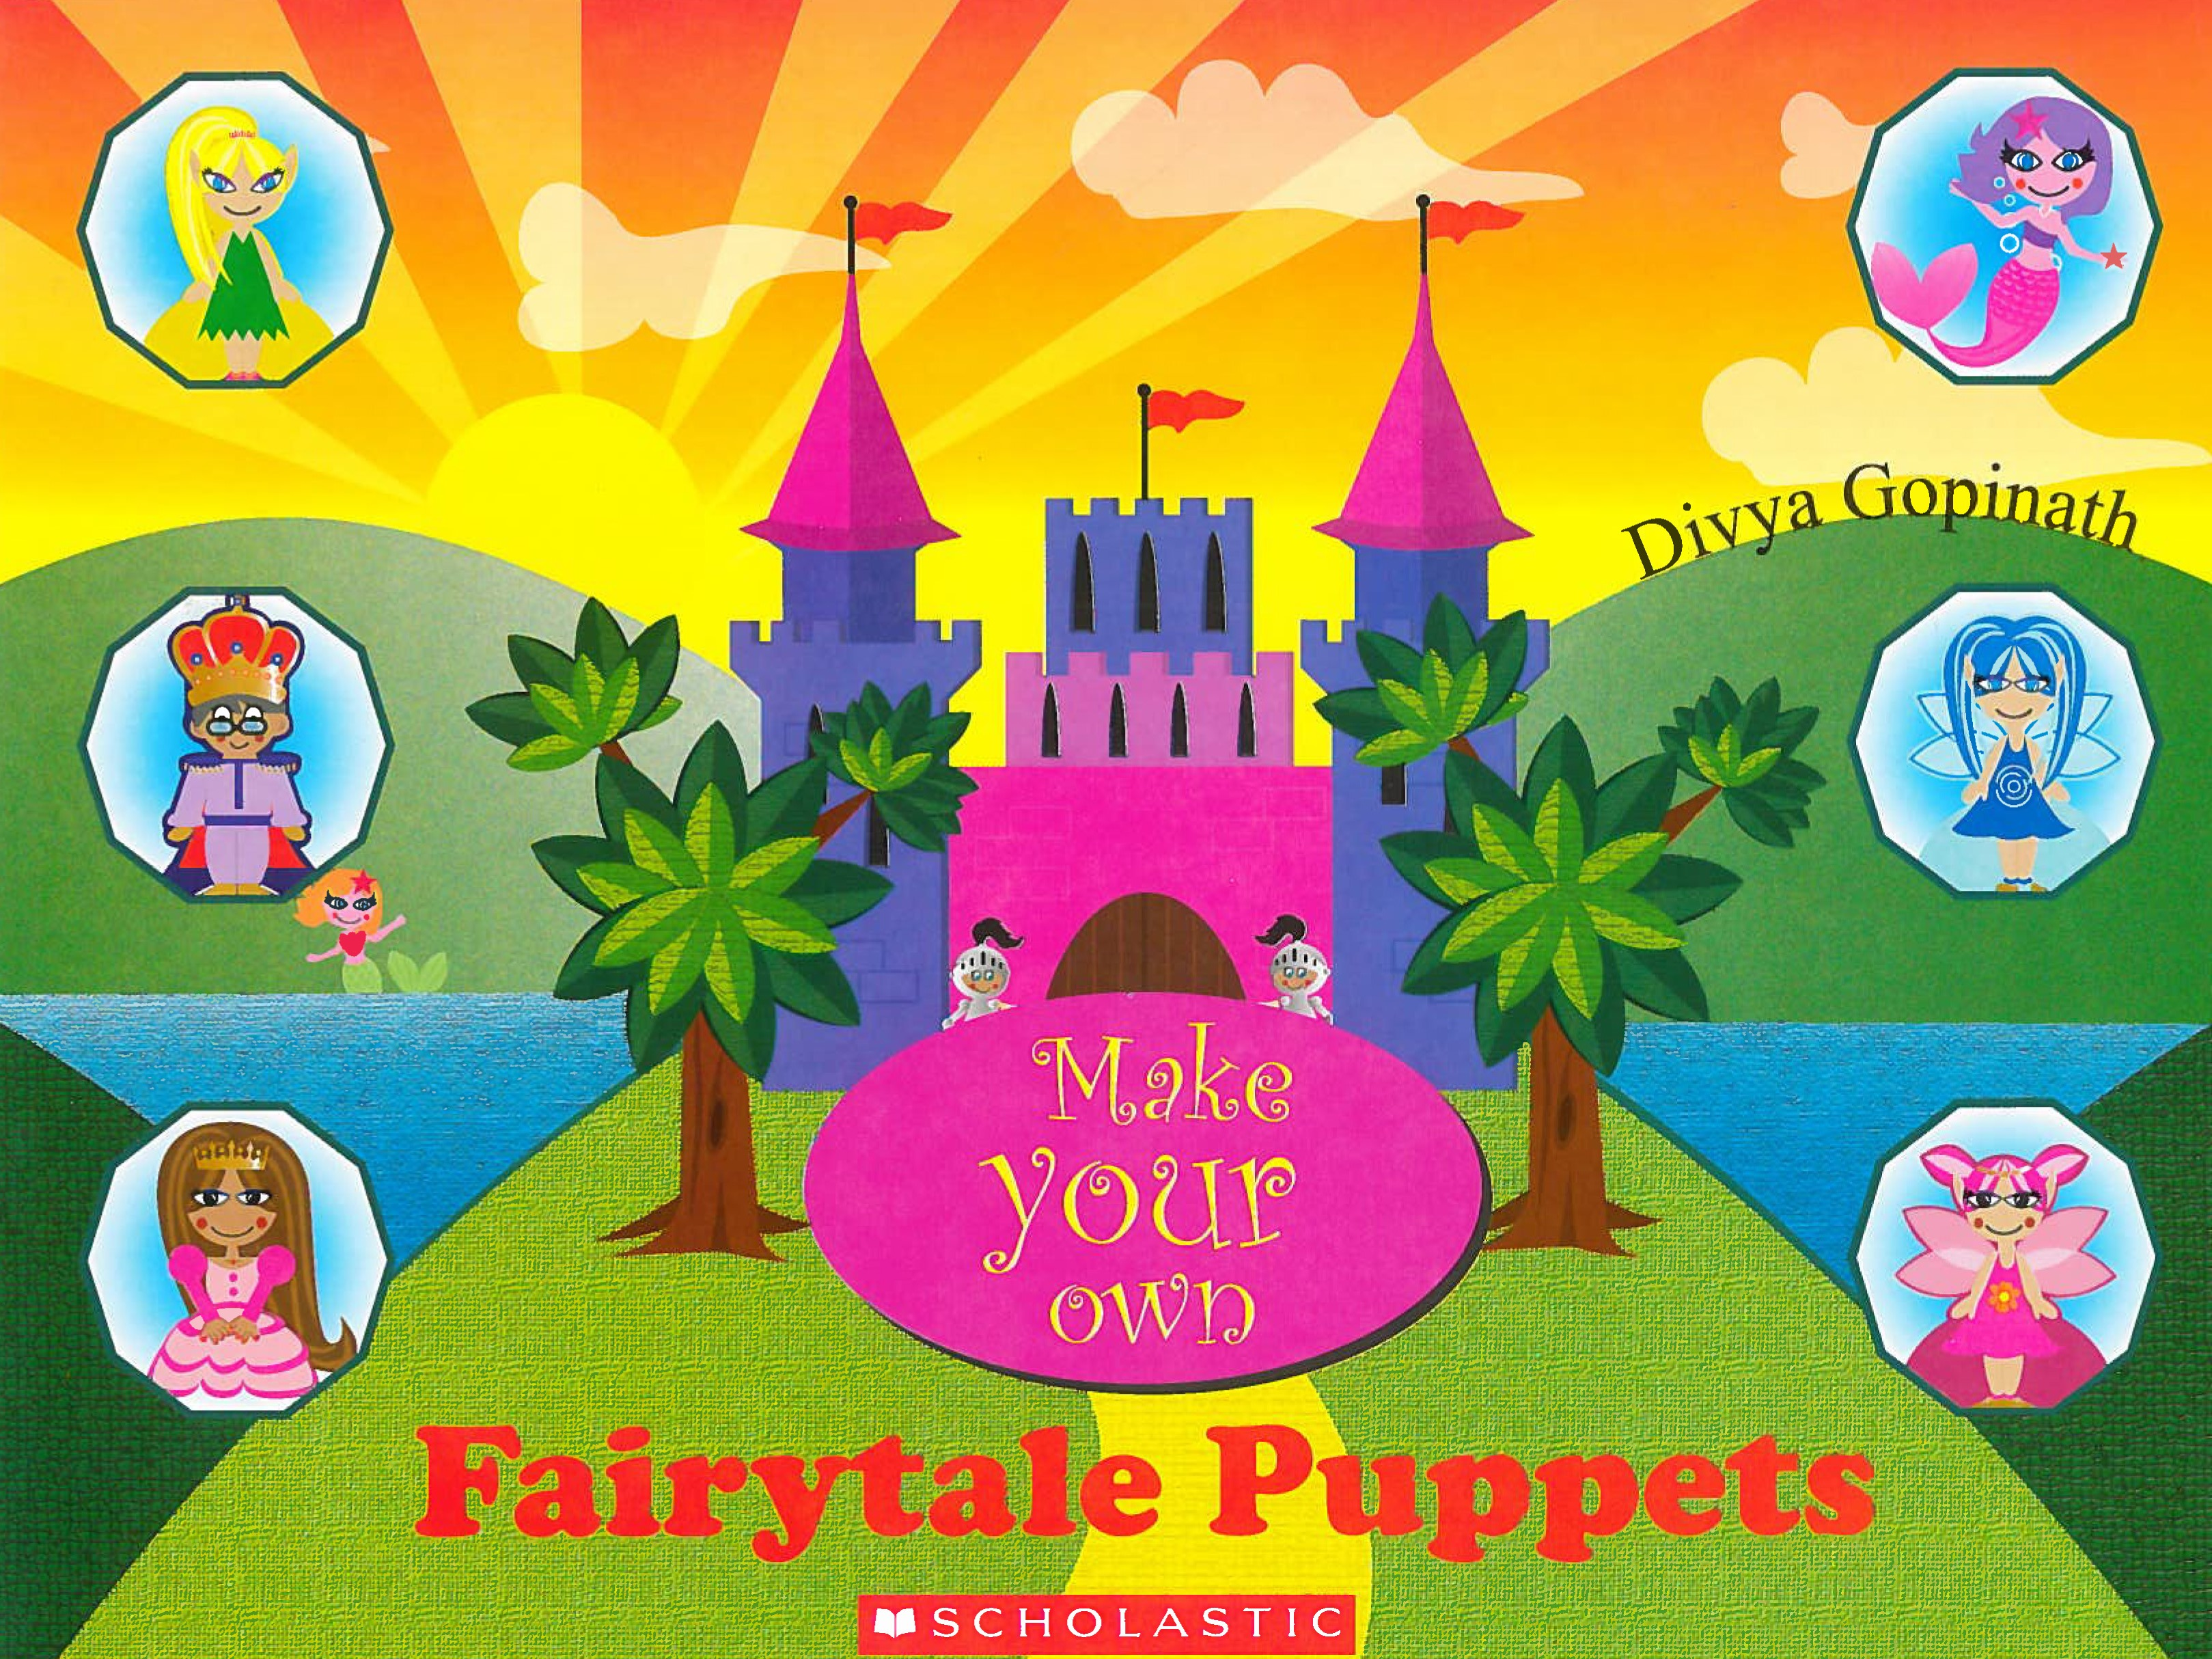 Make your own: Fairytale Puppets